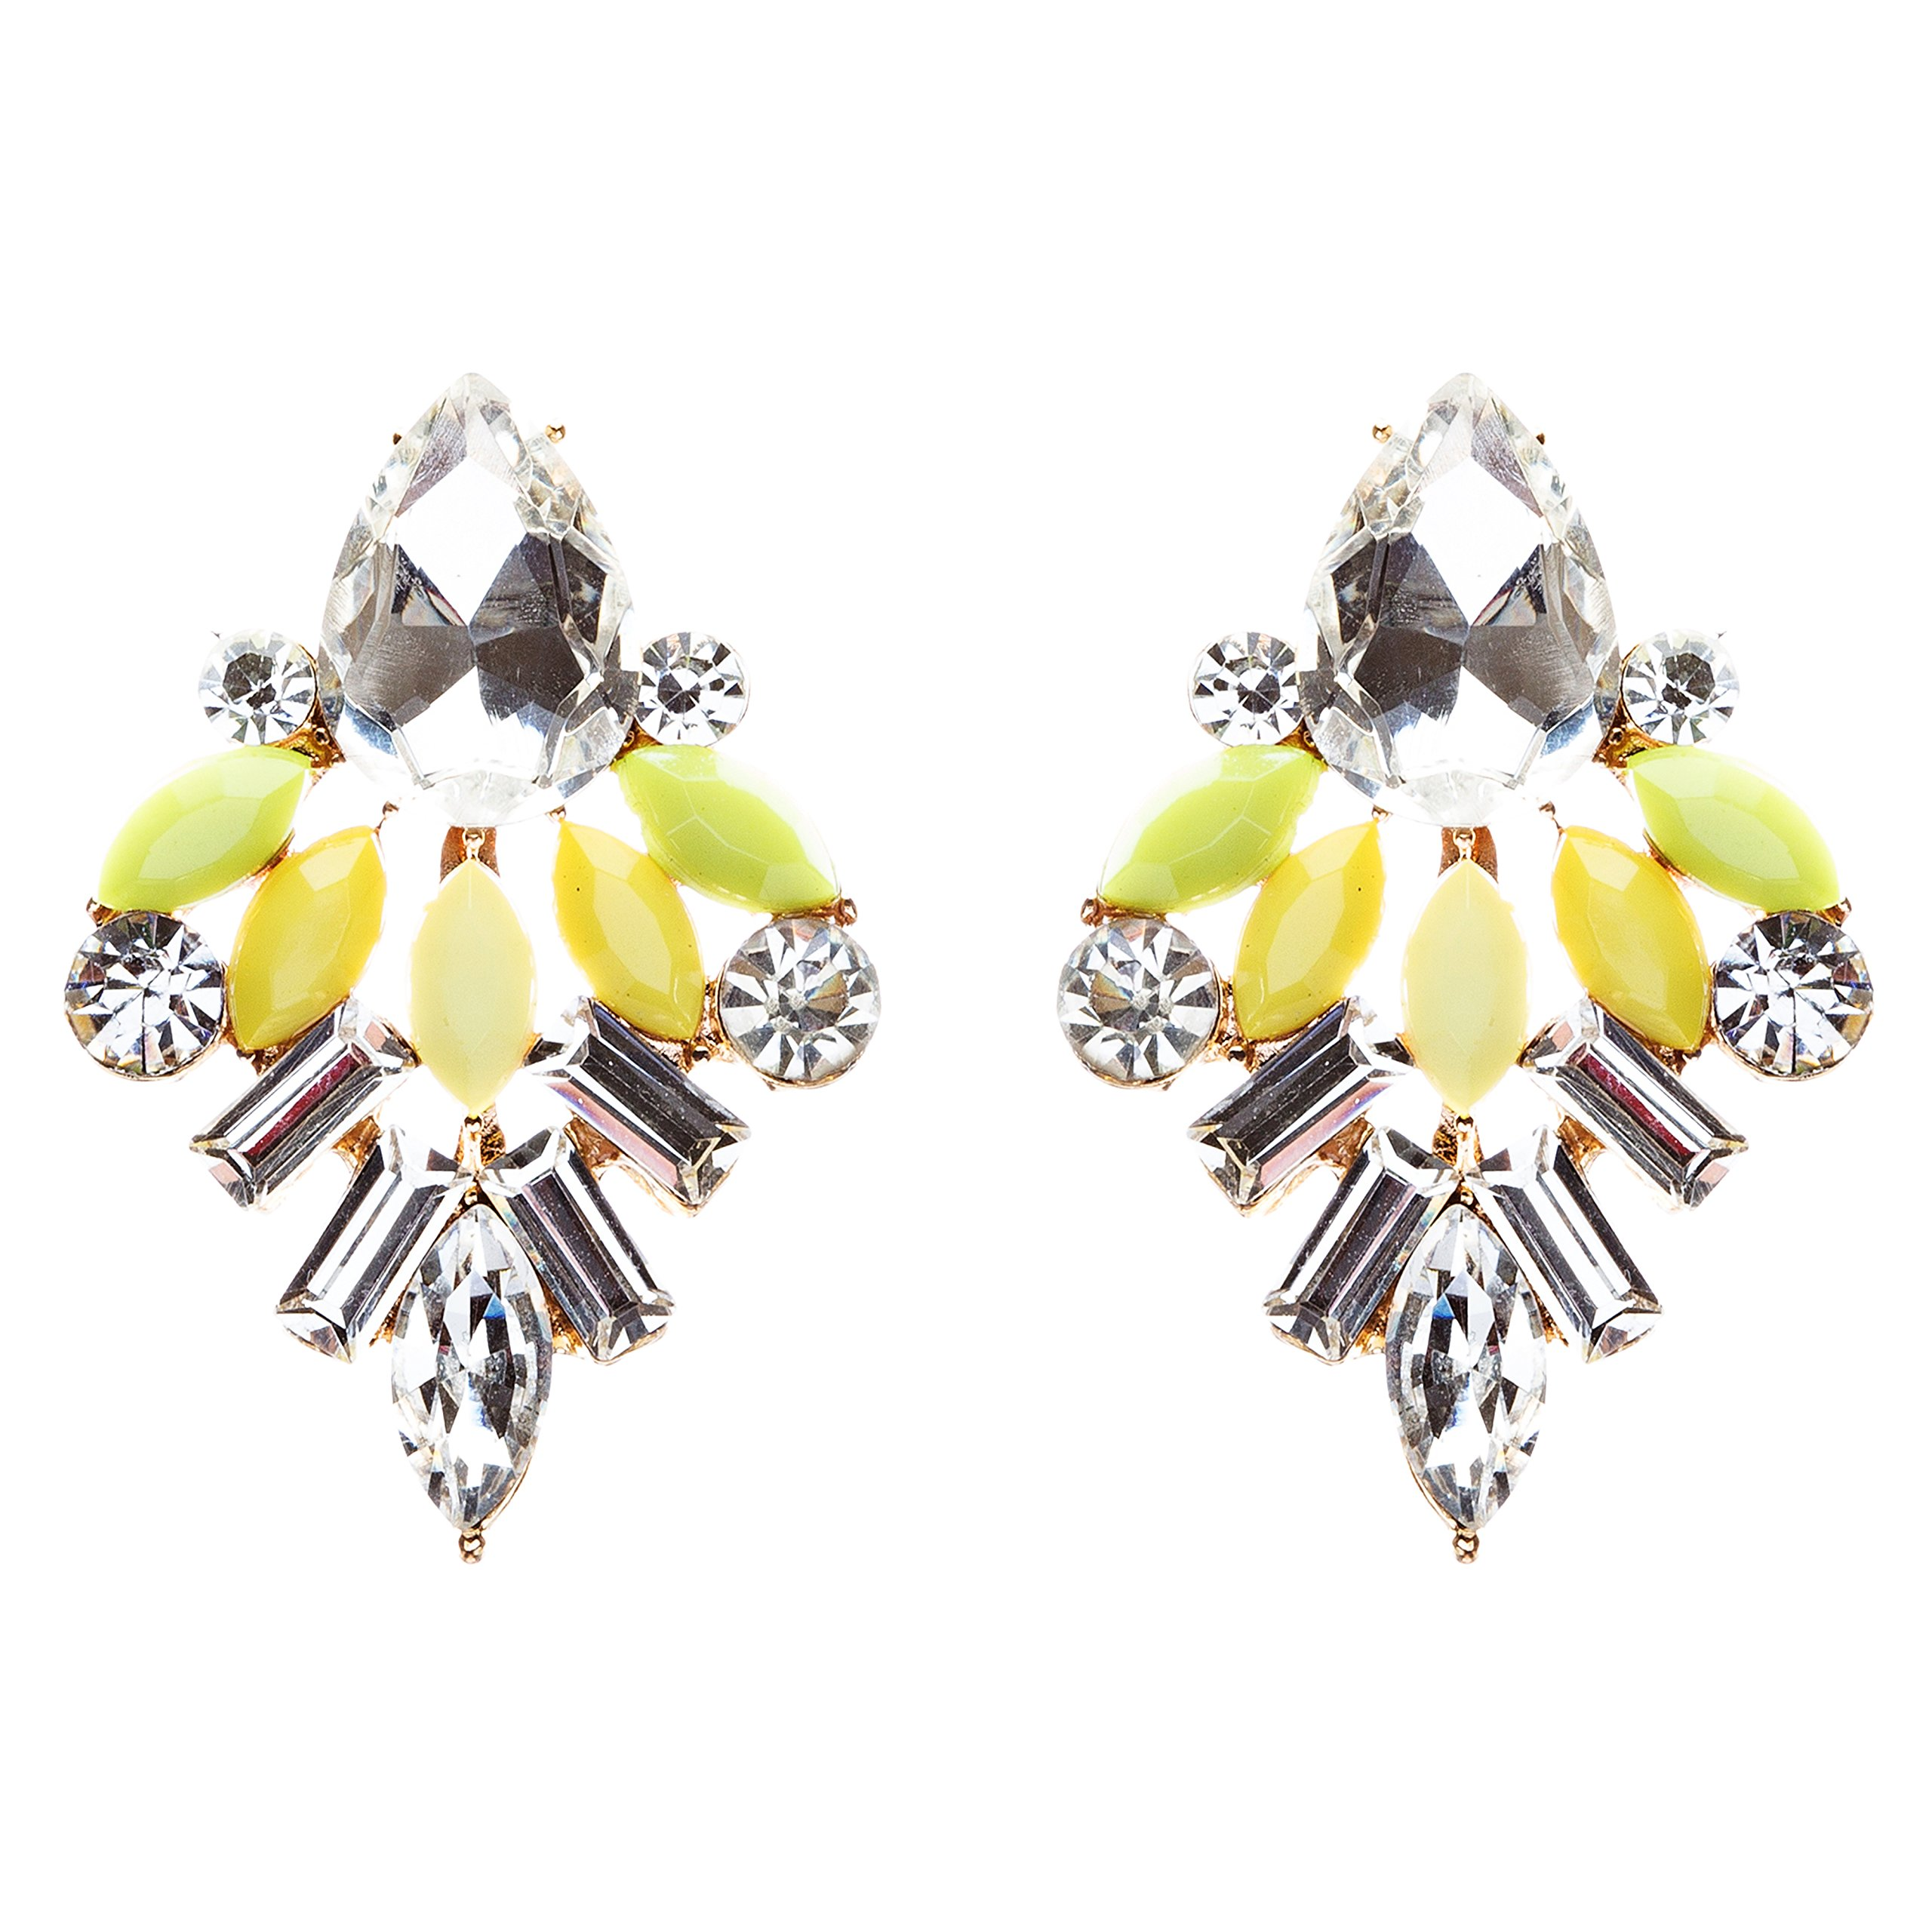 Modern Fashion Crystal Rhinestone Attractive Tear Drop Earrings E807 Yellow